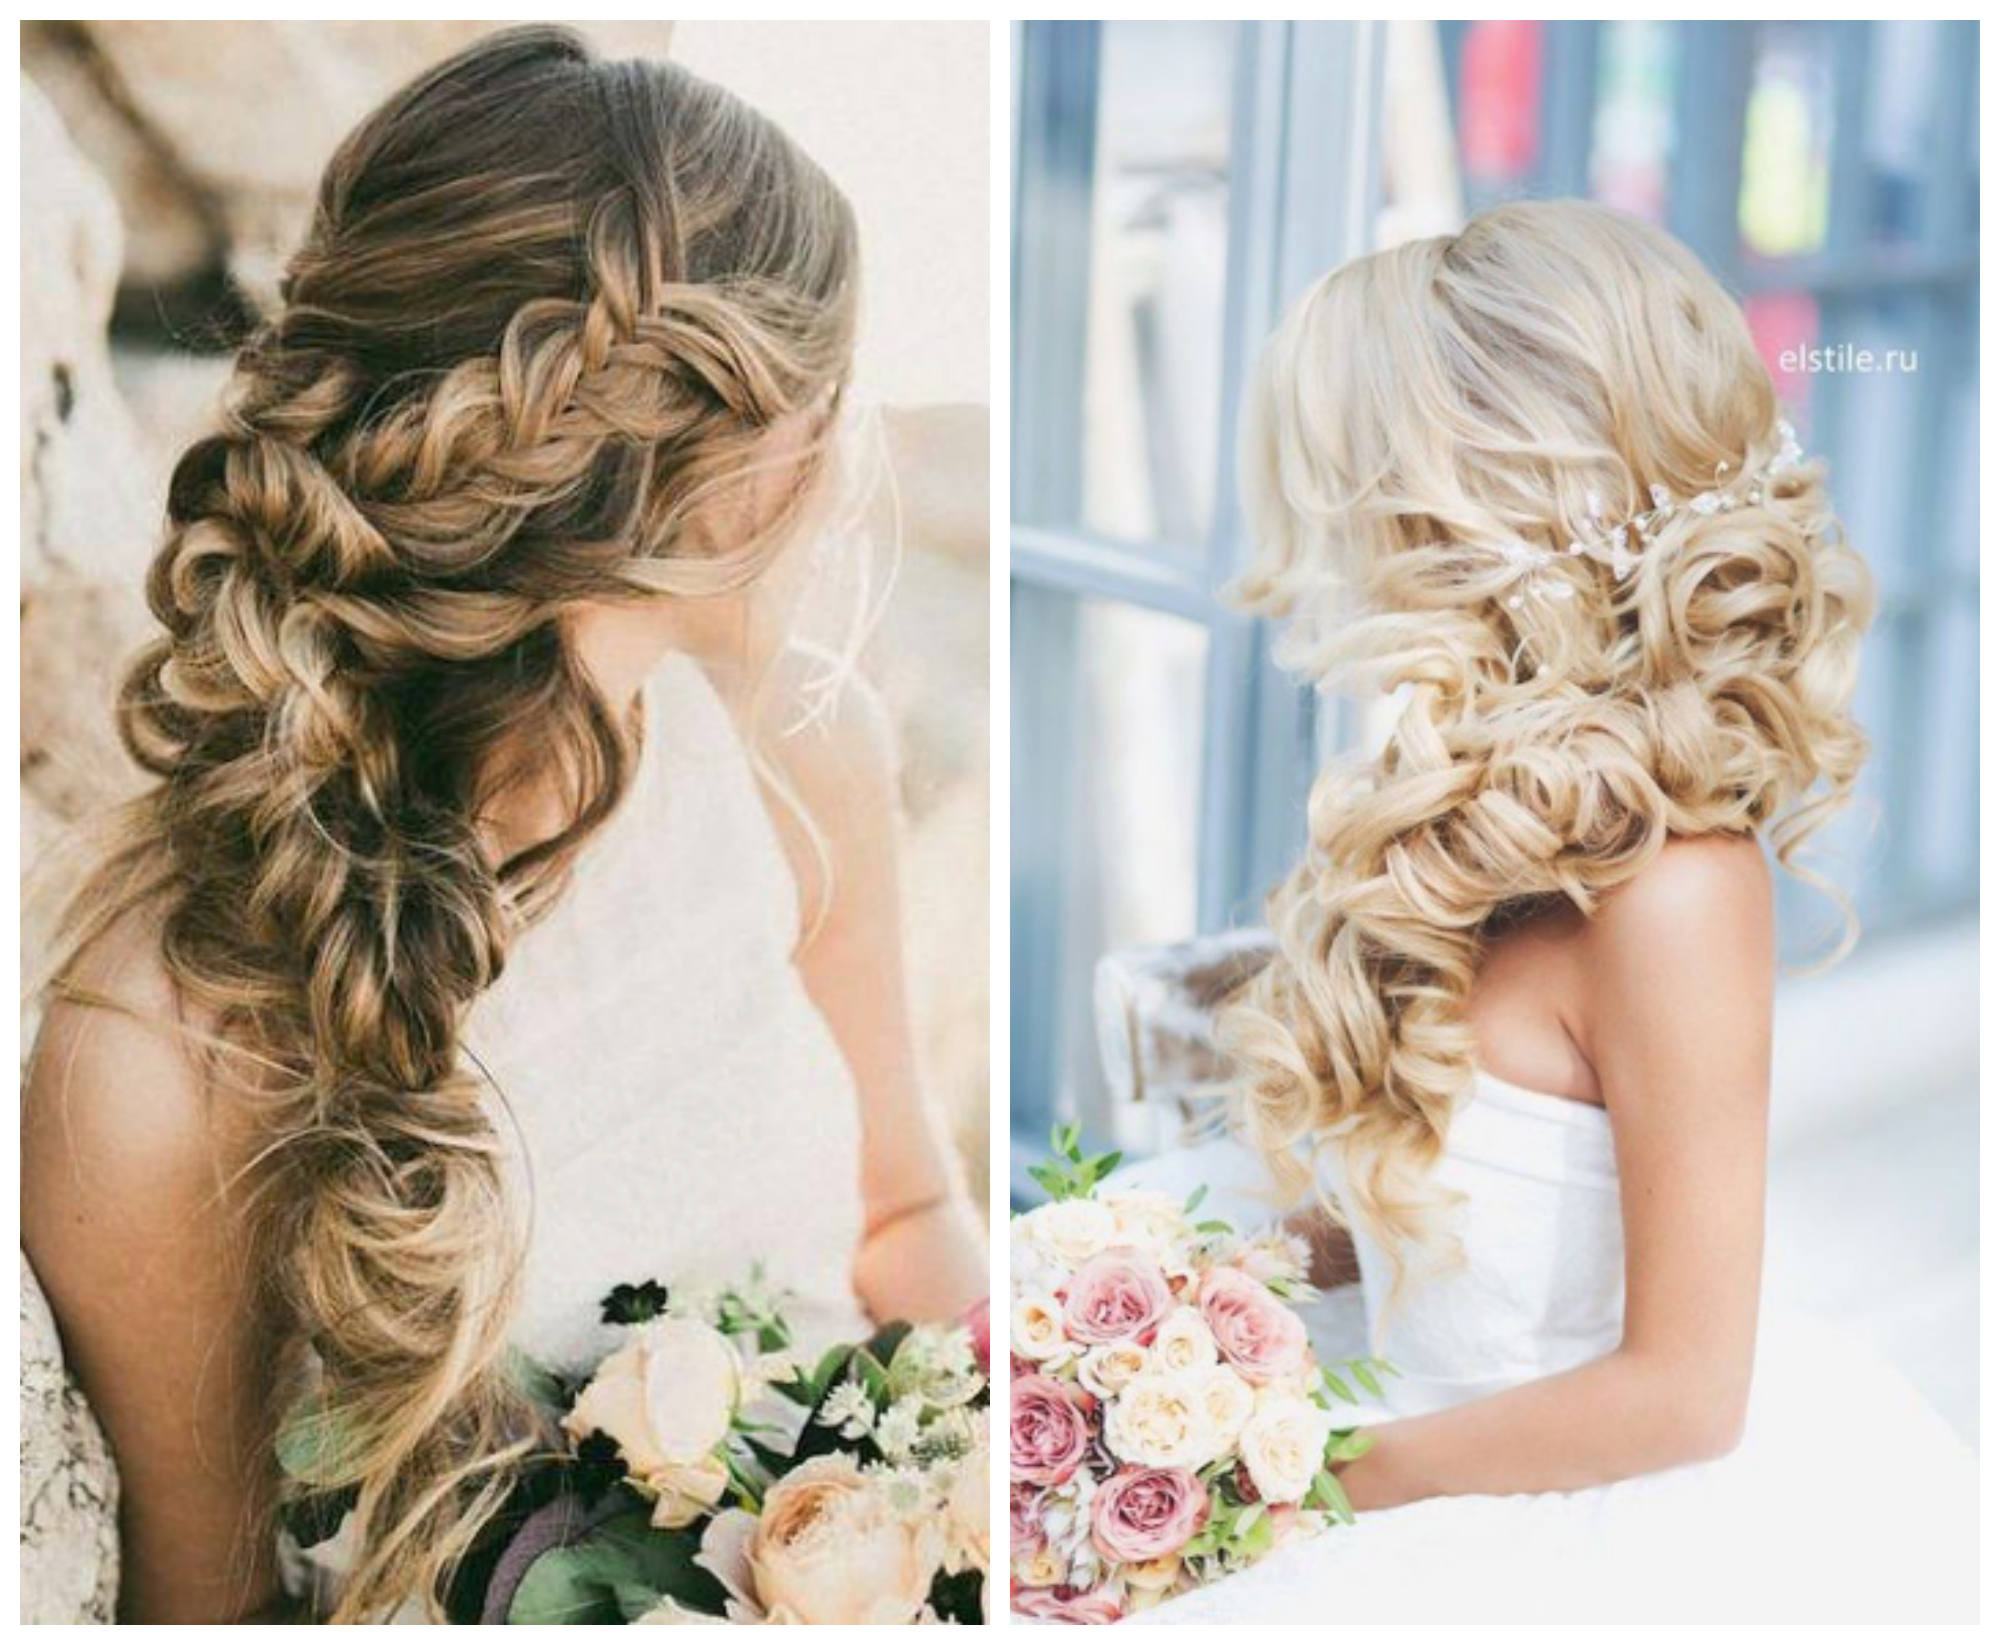 Wedding Hairstyles With Braids: 5 Bridal Hairstyles For Your Wedding Day